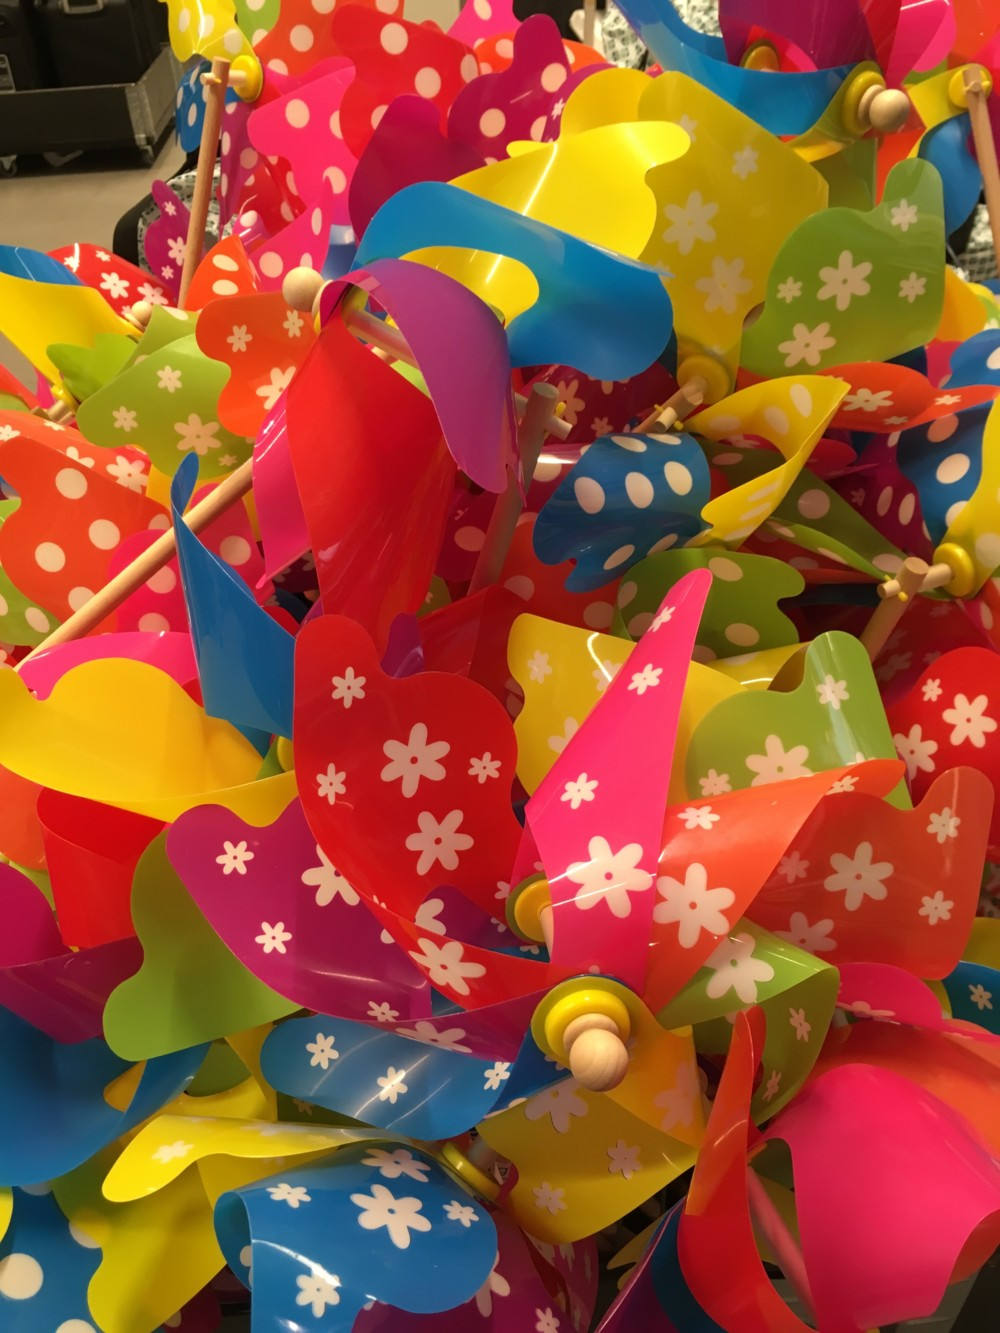 Plastic toys might hold toxic chemicals. Photo: AnnVixen